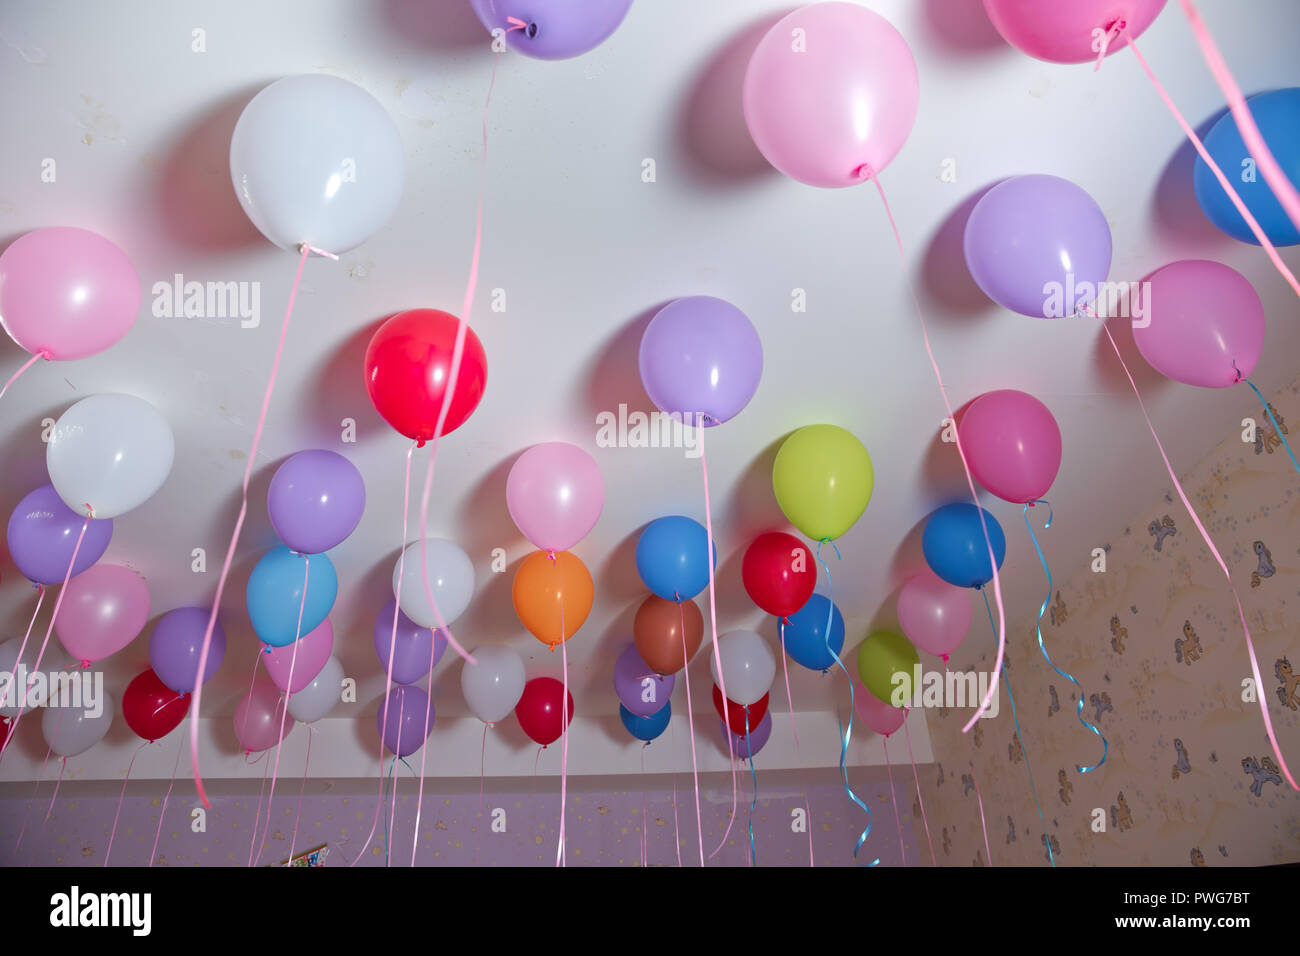 How To Decorate Room With Balloons For Birthday